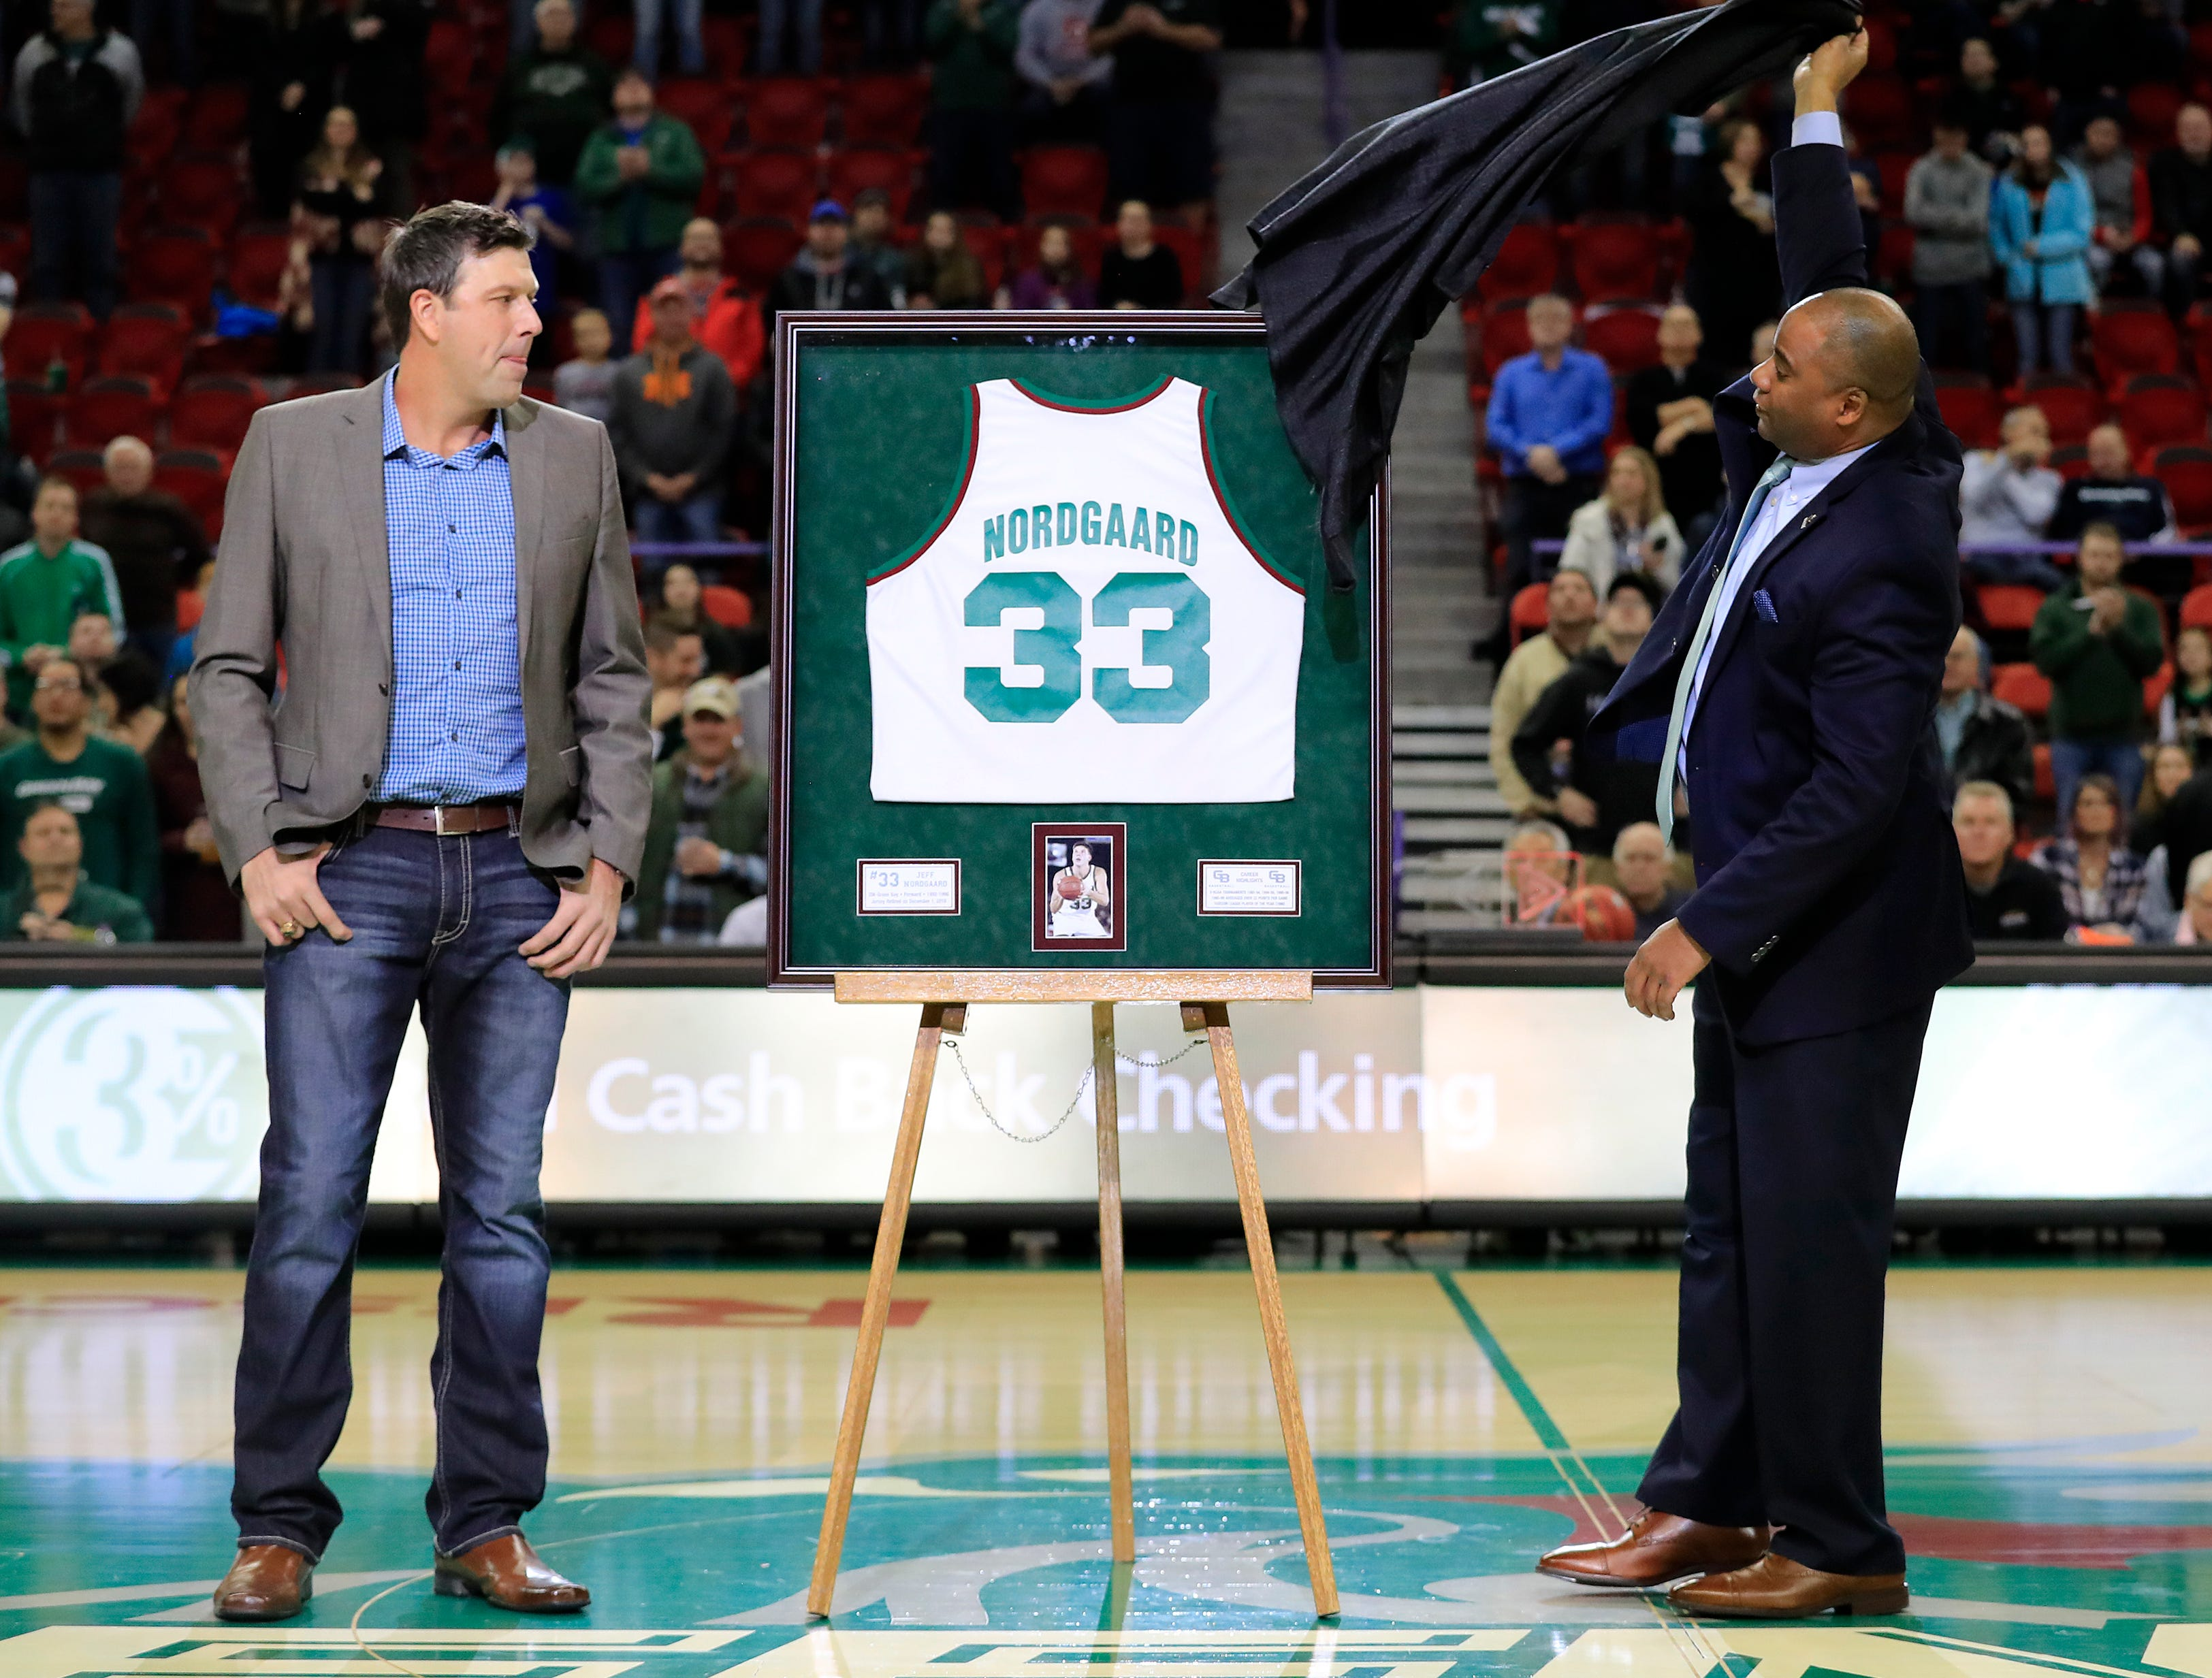 Athletics Director Charles Guthrie presents former UW-Green Bay basketball player Jeff Nordgaard a framed jersey during halftime of a NCAA basketball game at the Resch Center on Saturday, December 1, 2018 in Ashwaubenon, Wis.